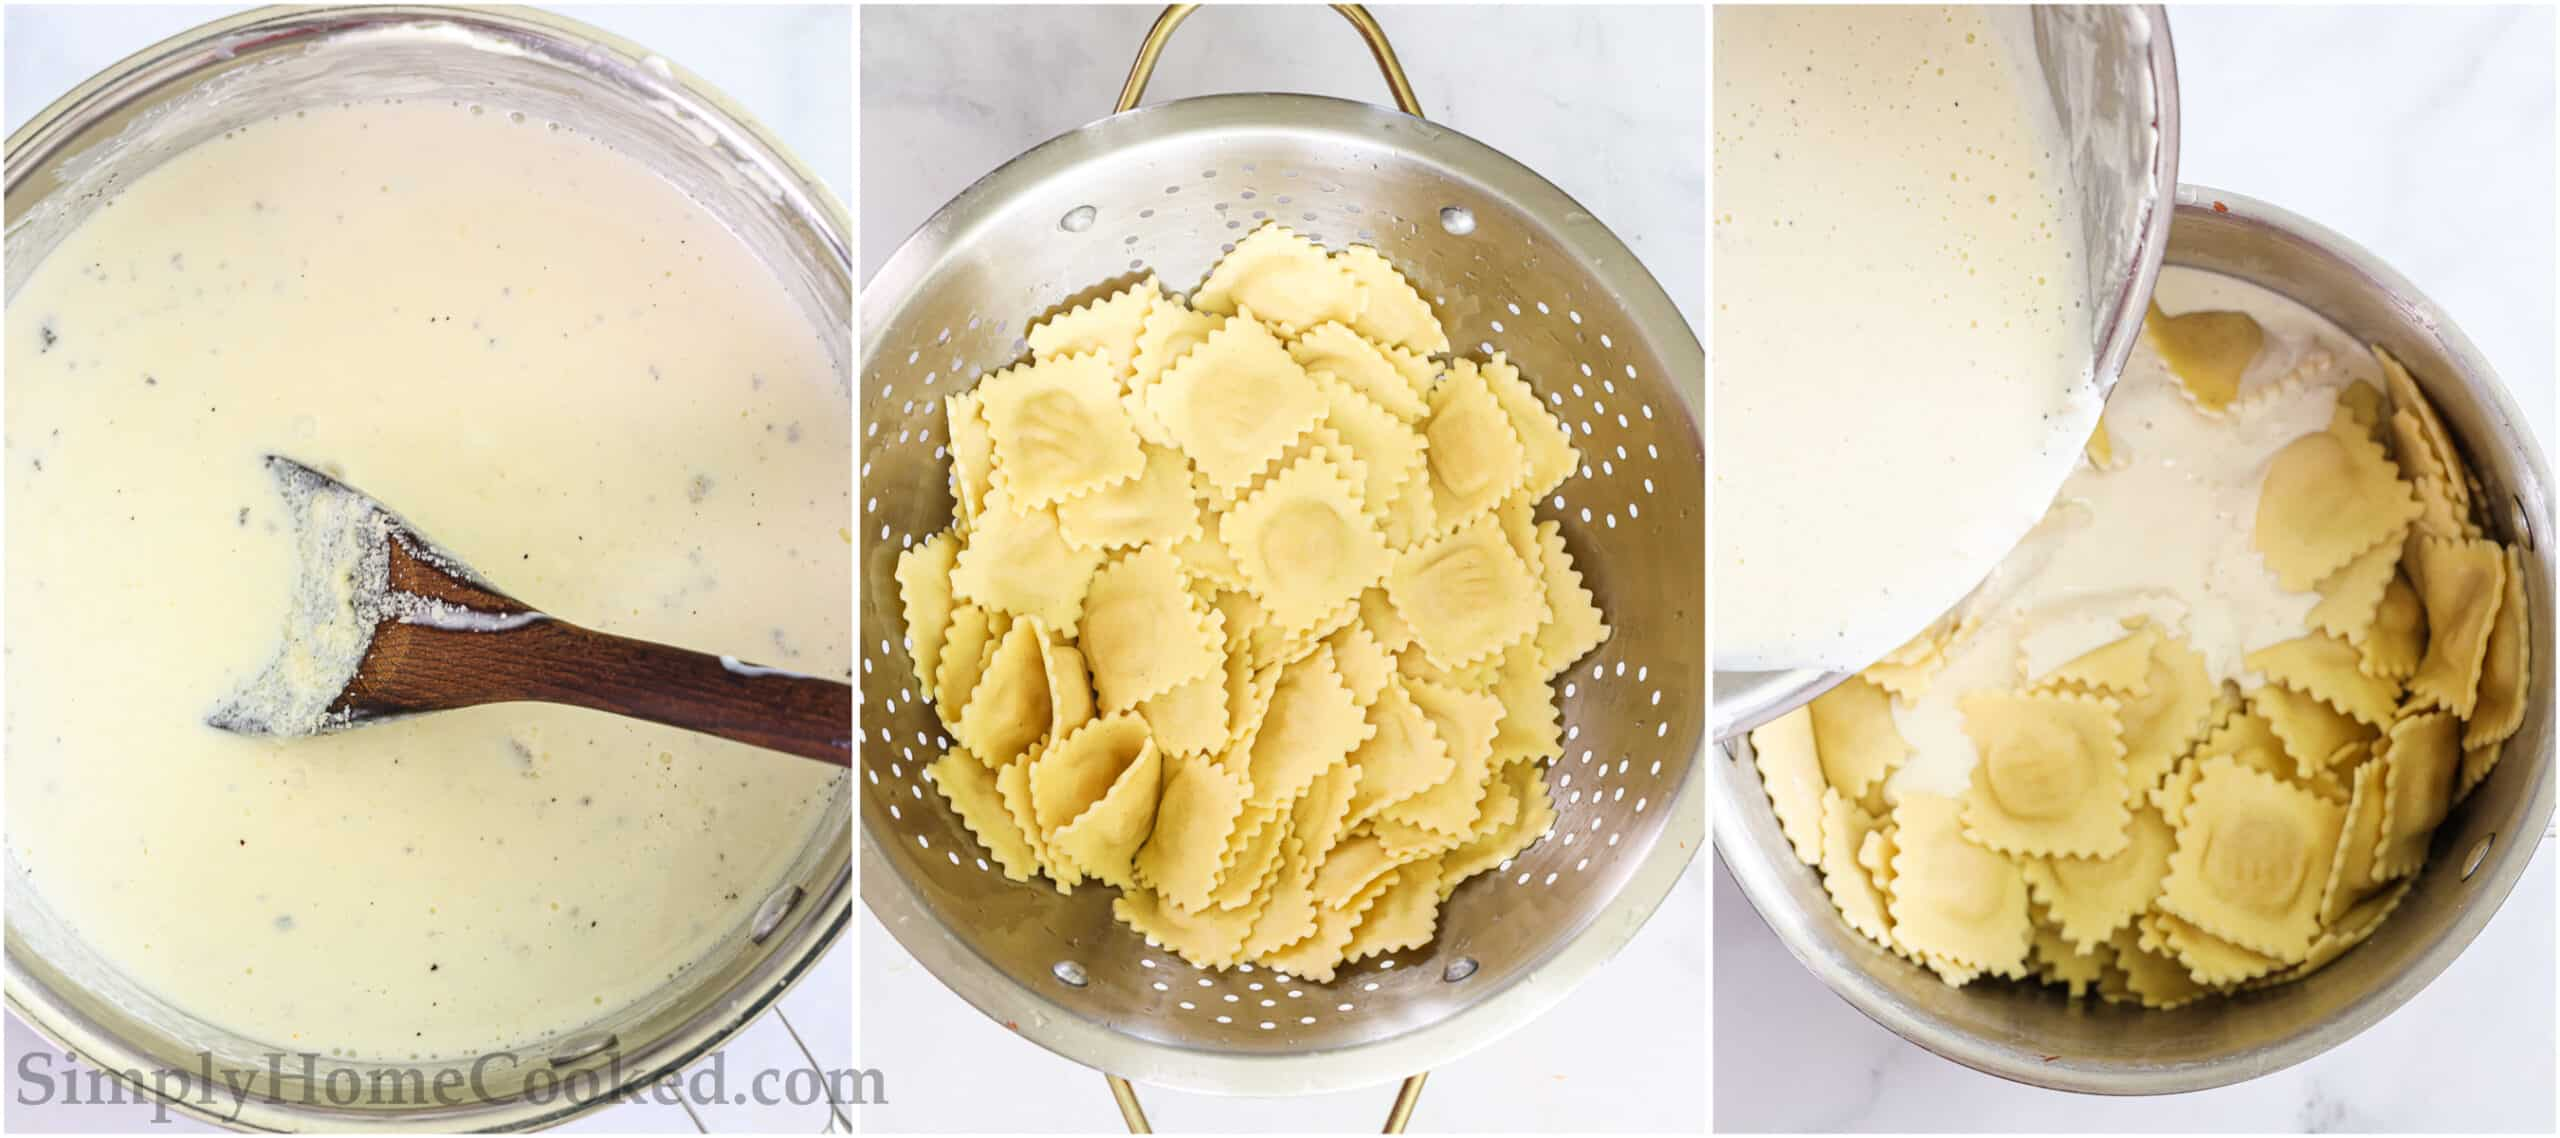 Steps to make Easy Four Cheese Ravioli, including simmering the sauce, cooking and draining the ravioli, and then adding the sauce to the ravioli.